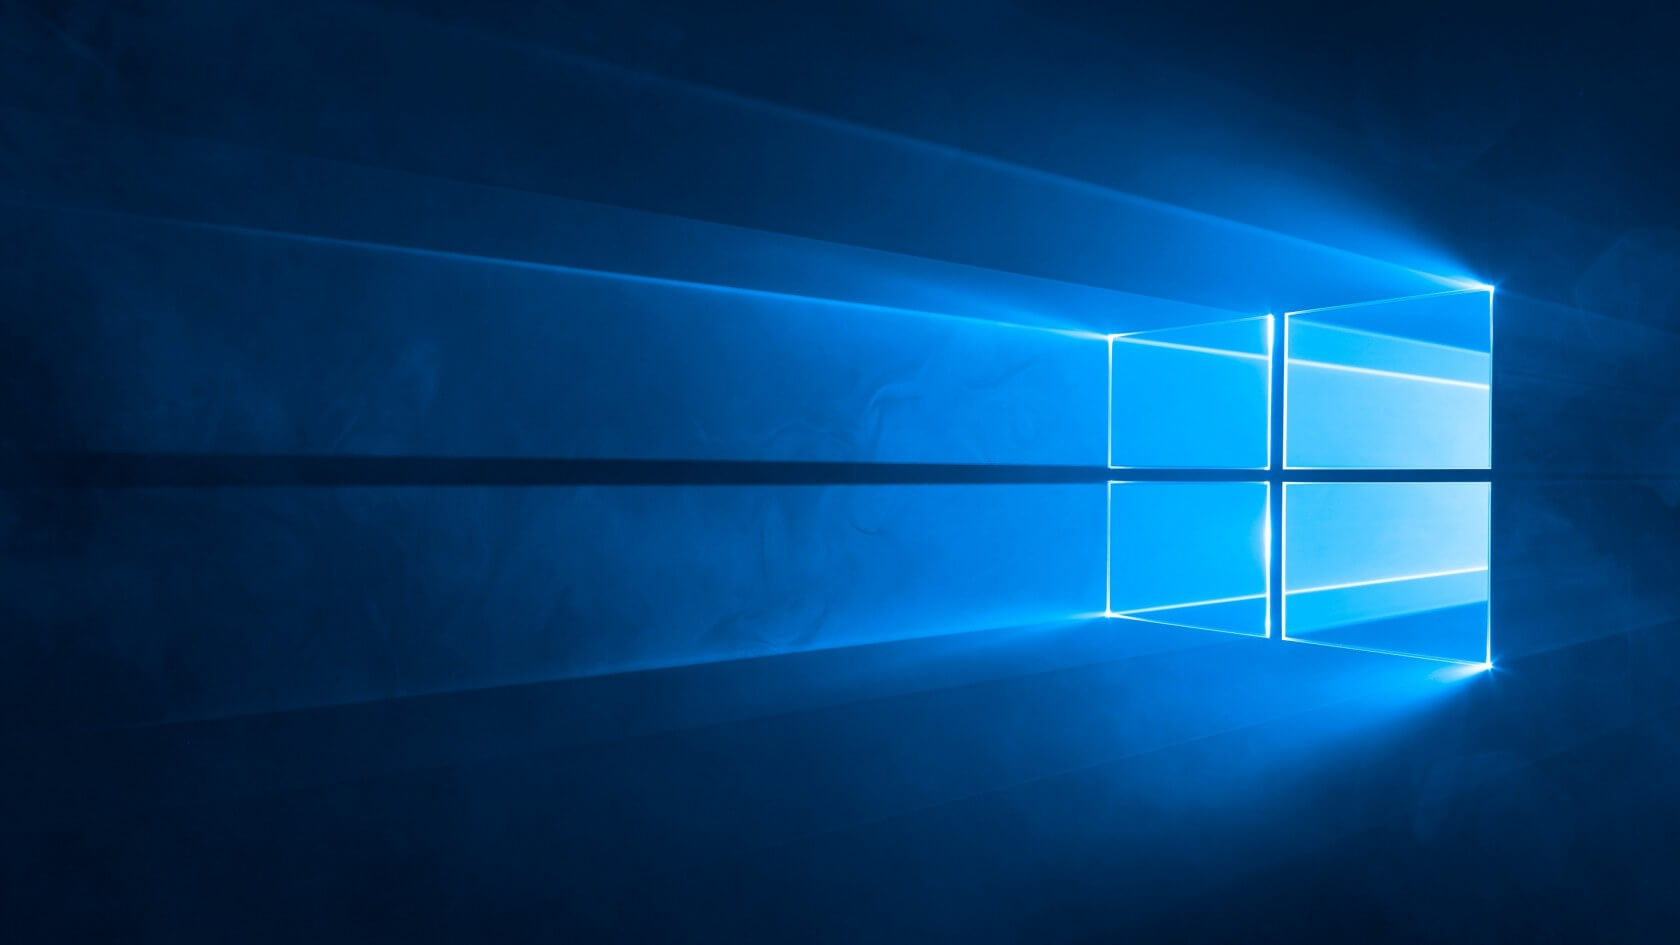 Microsoft is starting to force-update Windows 10 machines from